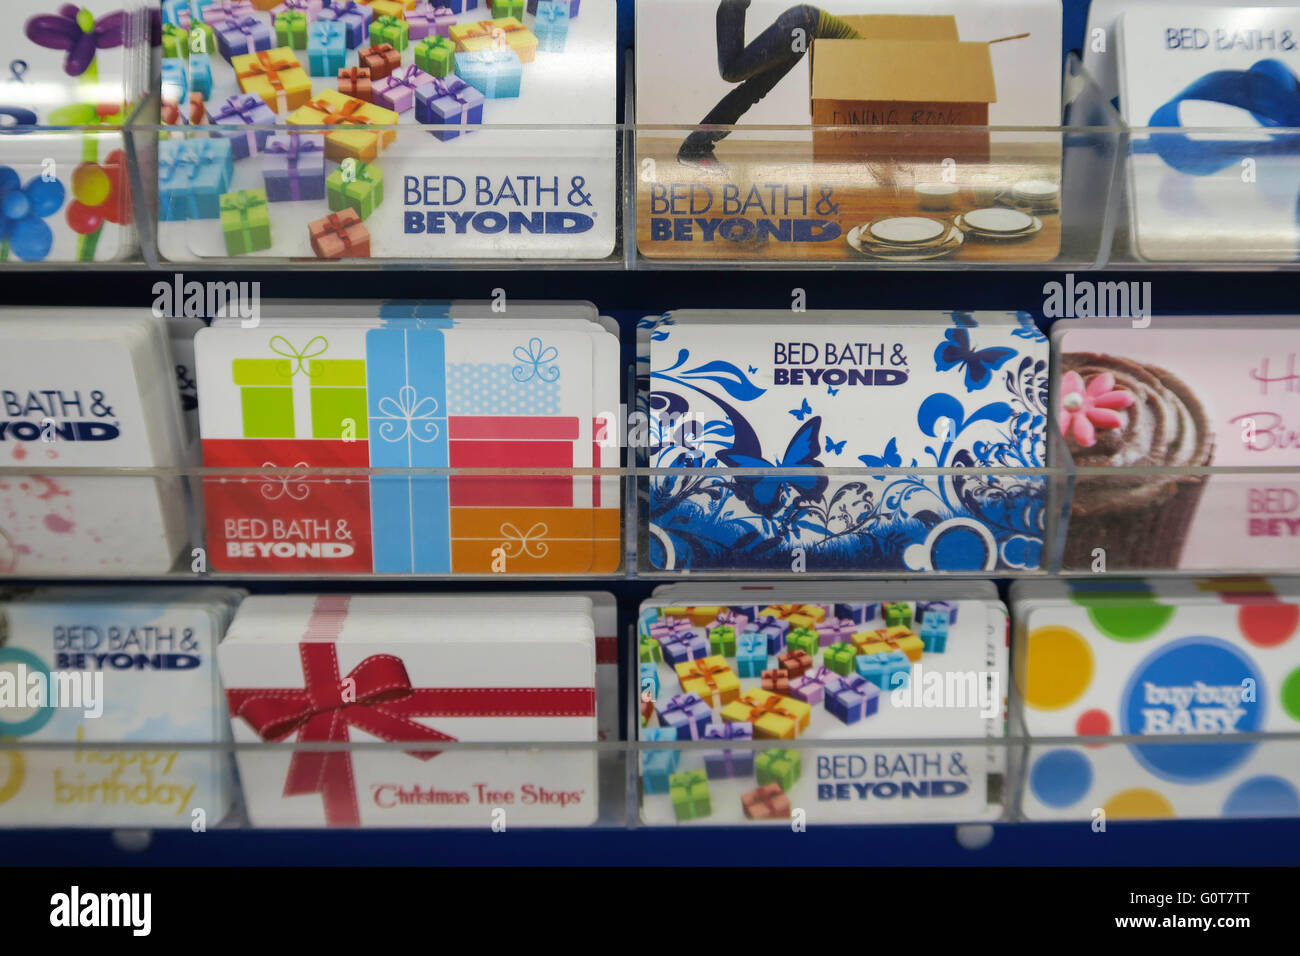 bed bath and beyond prepaid gift cards display usa